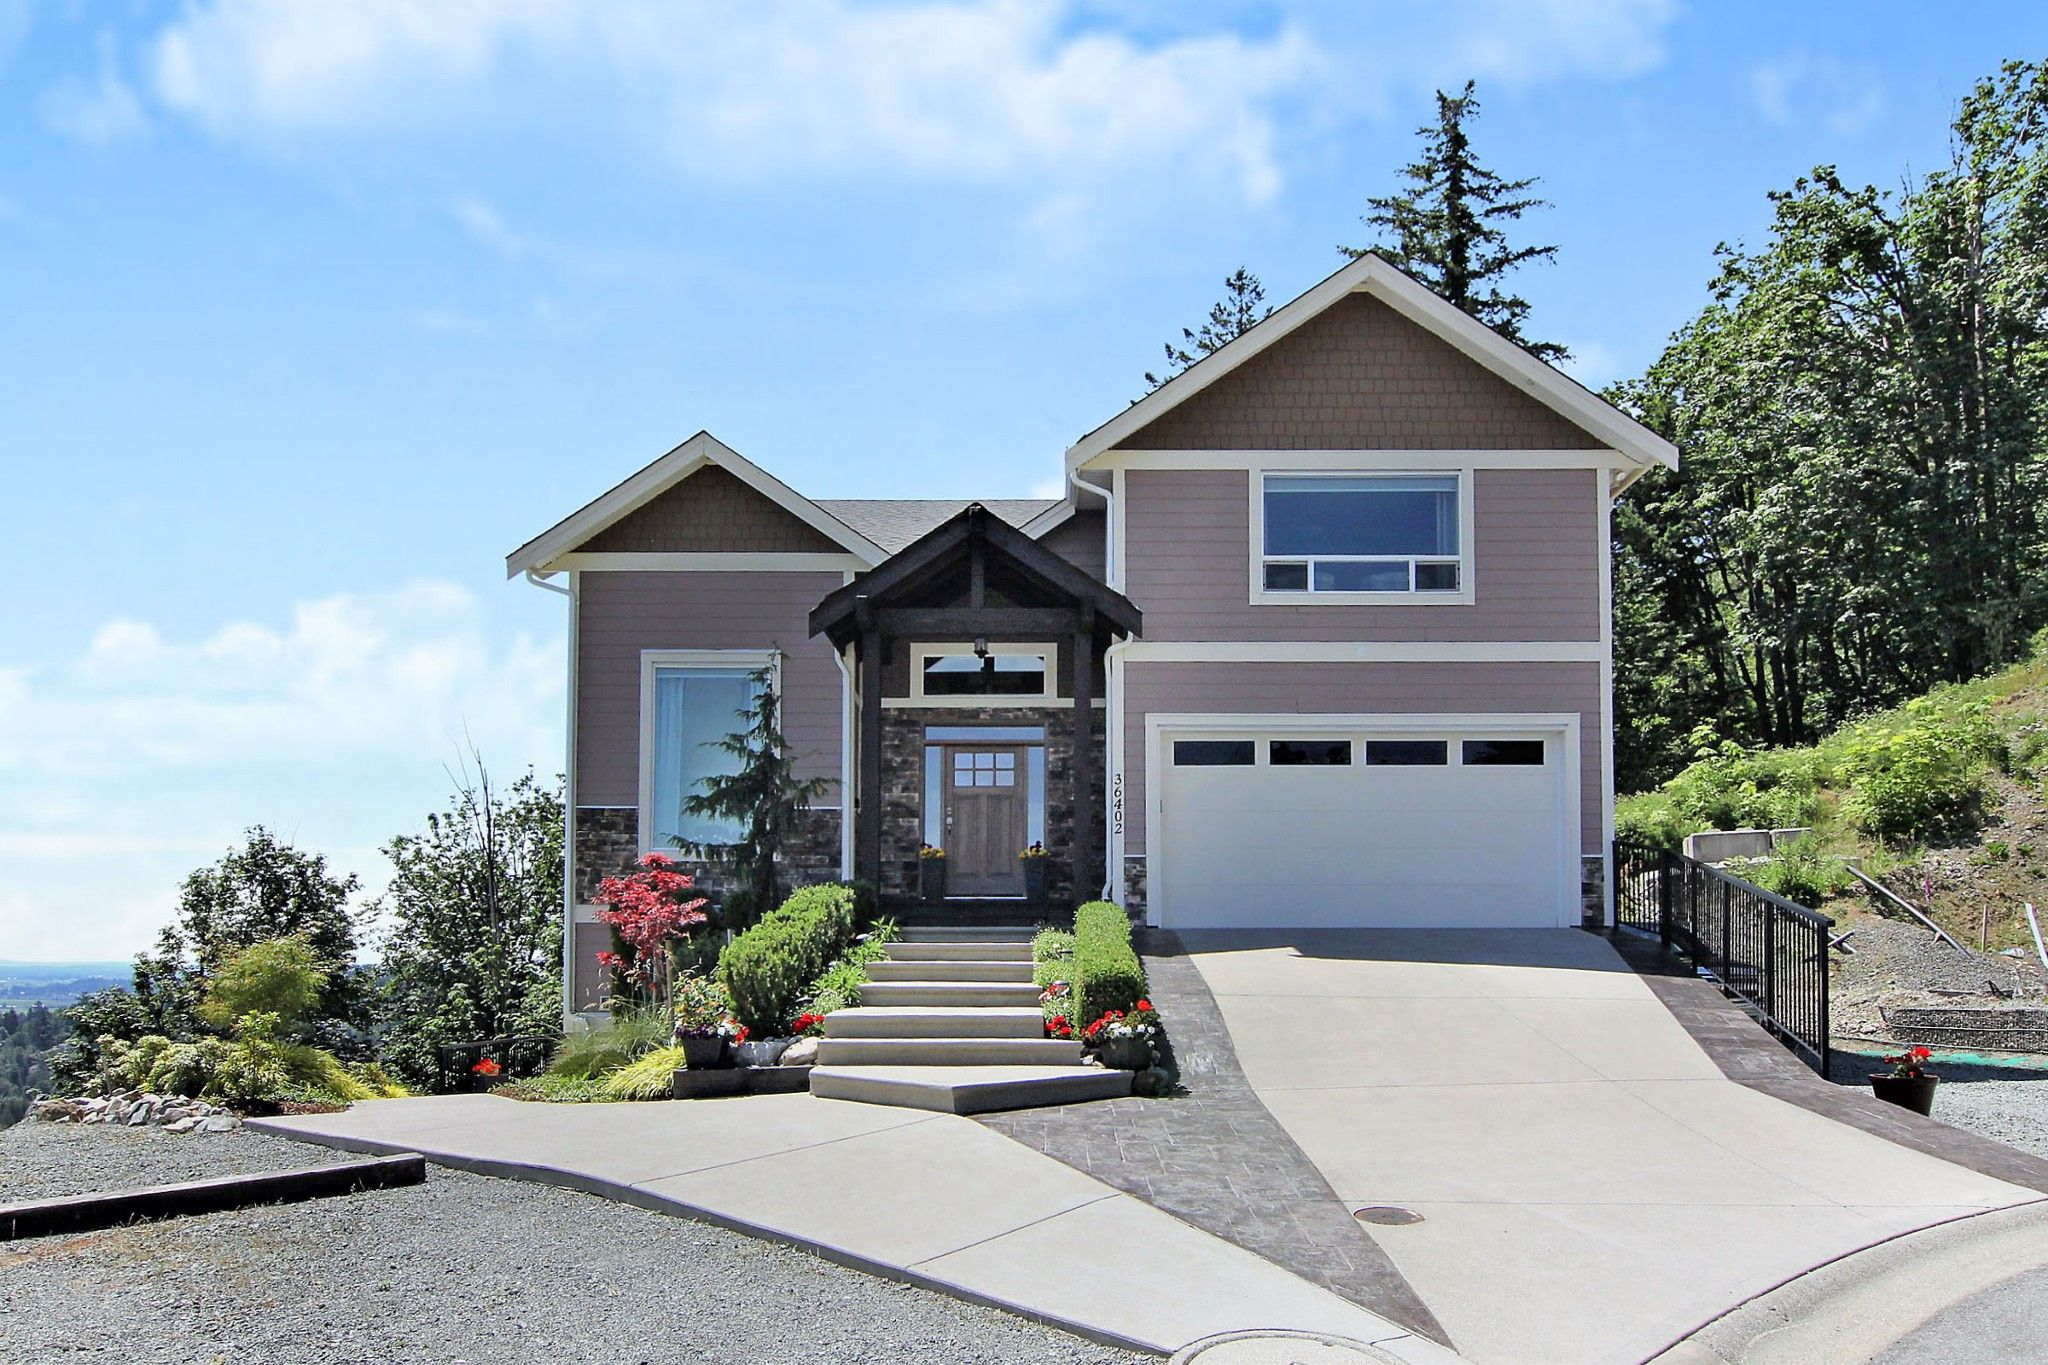 """Main Photo: 36402 ESTEVAN Court in Abbotsford: Abbotsford East House for sale in """"FALCON RIDGE"""" : MLS®# R2379792"""